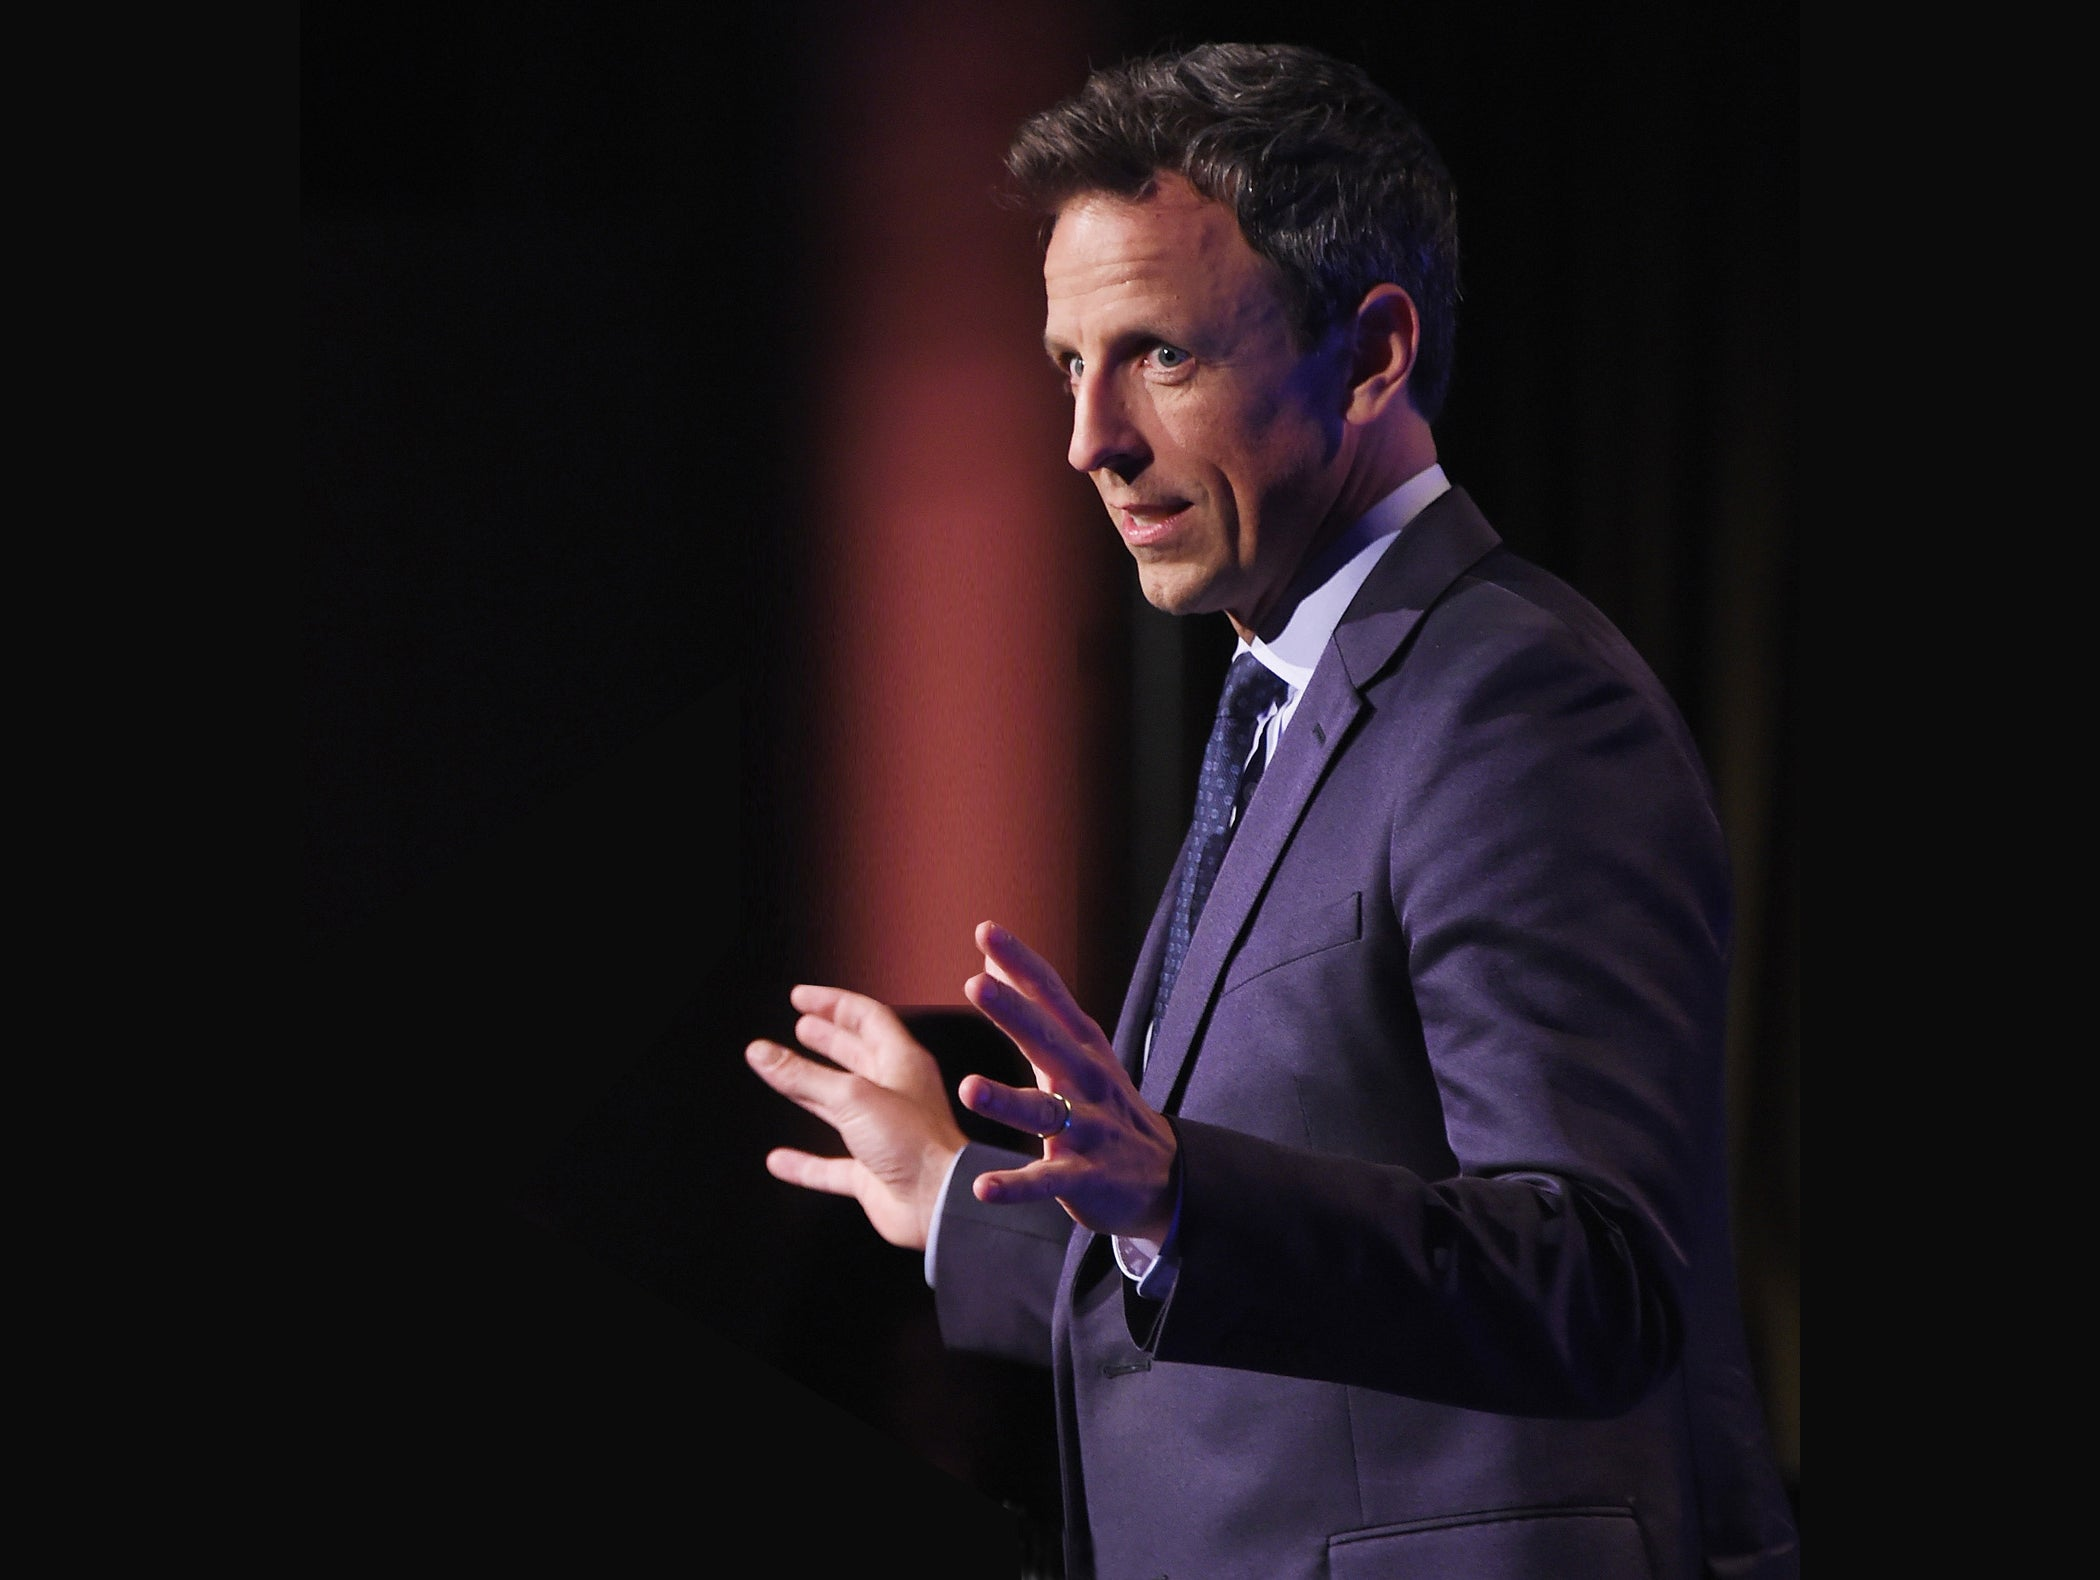 Seth Meyers to Host 75th Annual Golden Globes